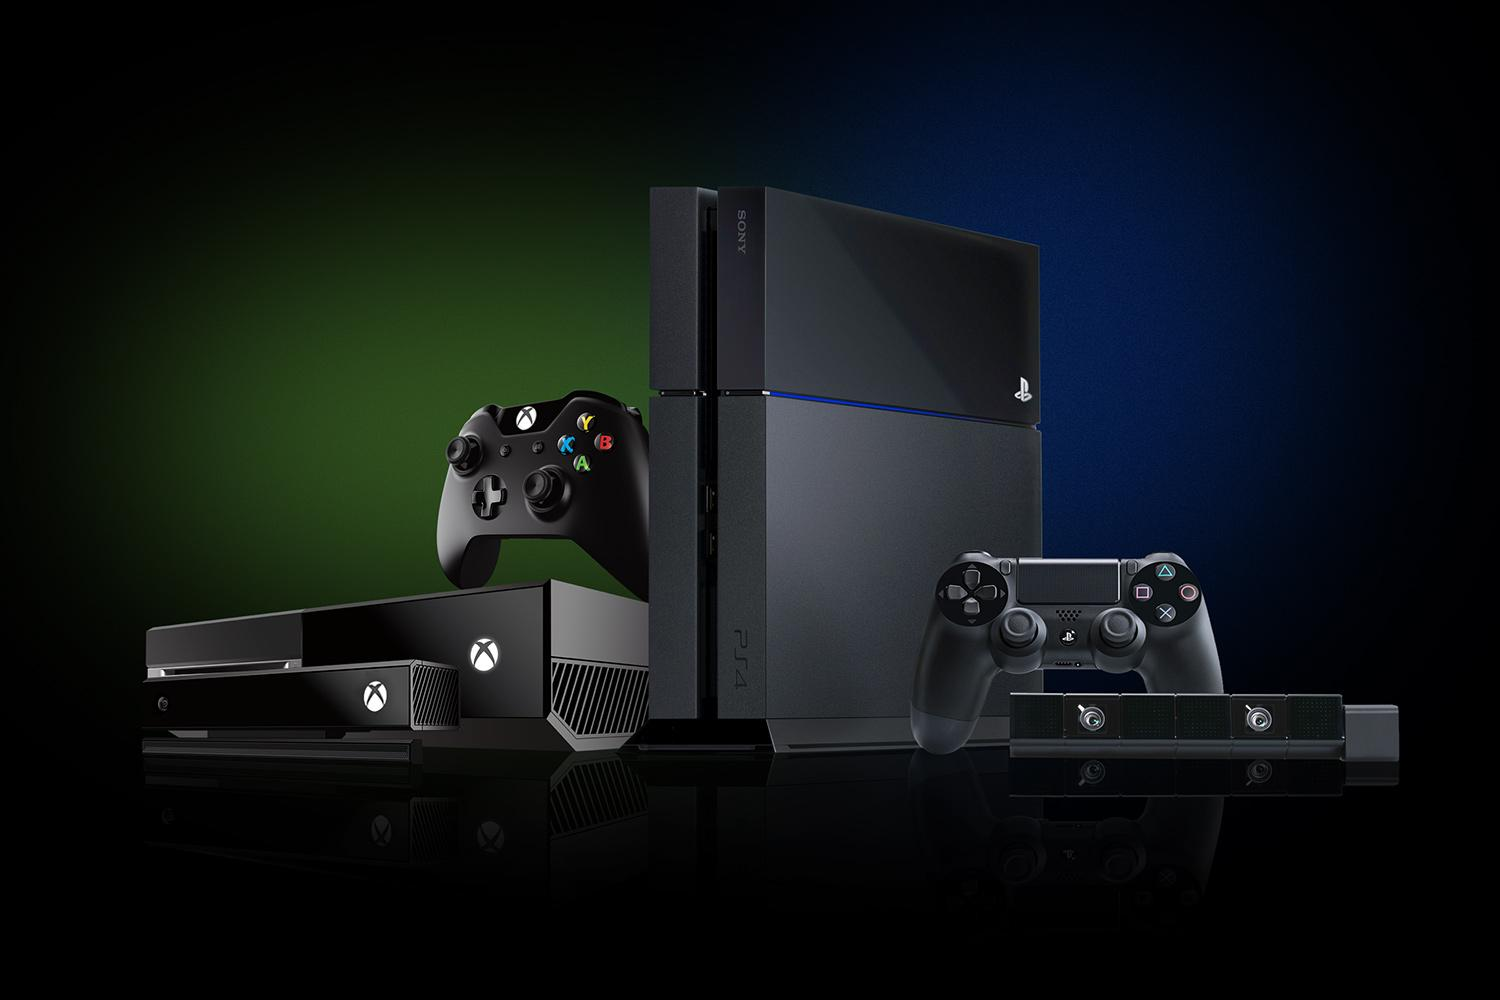 Xbox One and PlayStation 4 cross-play is not a lost cause